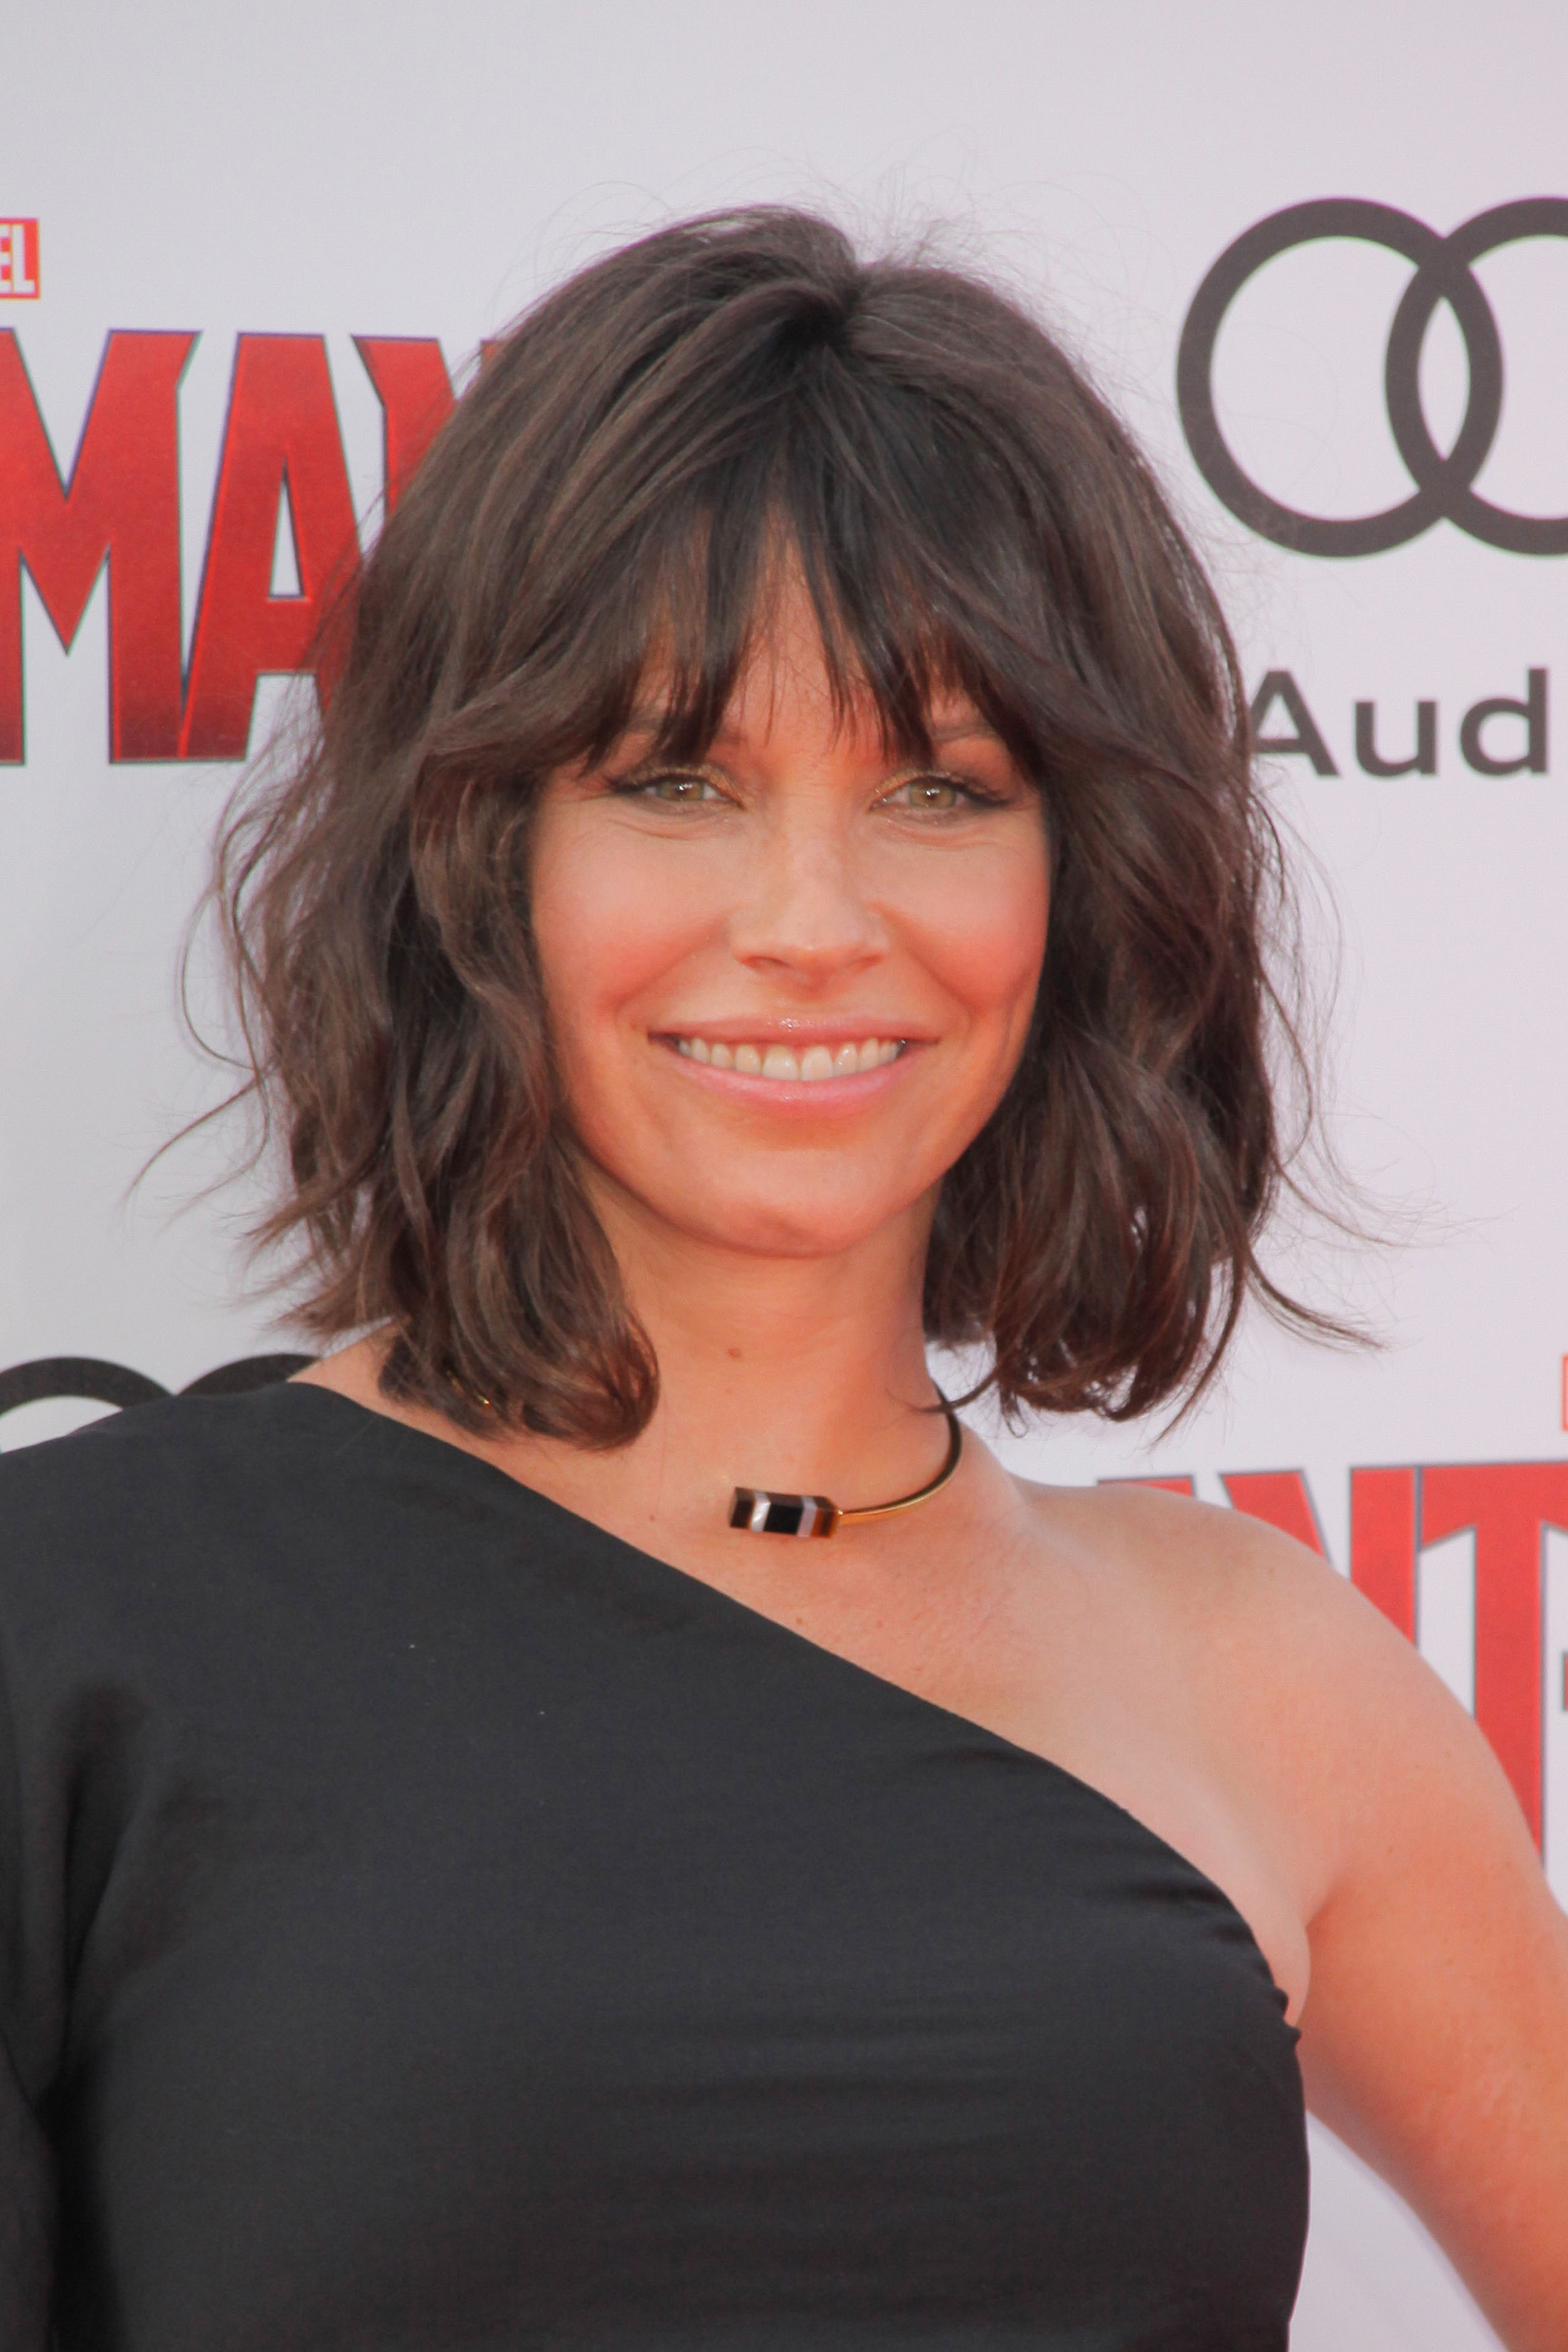 Evangeline Lilly will sechs Kinder - LooMee TV